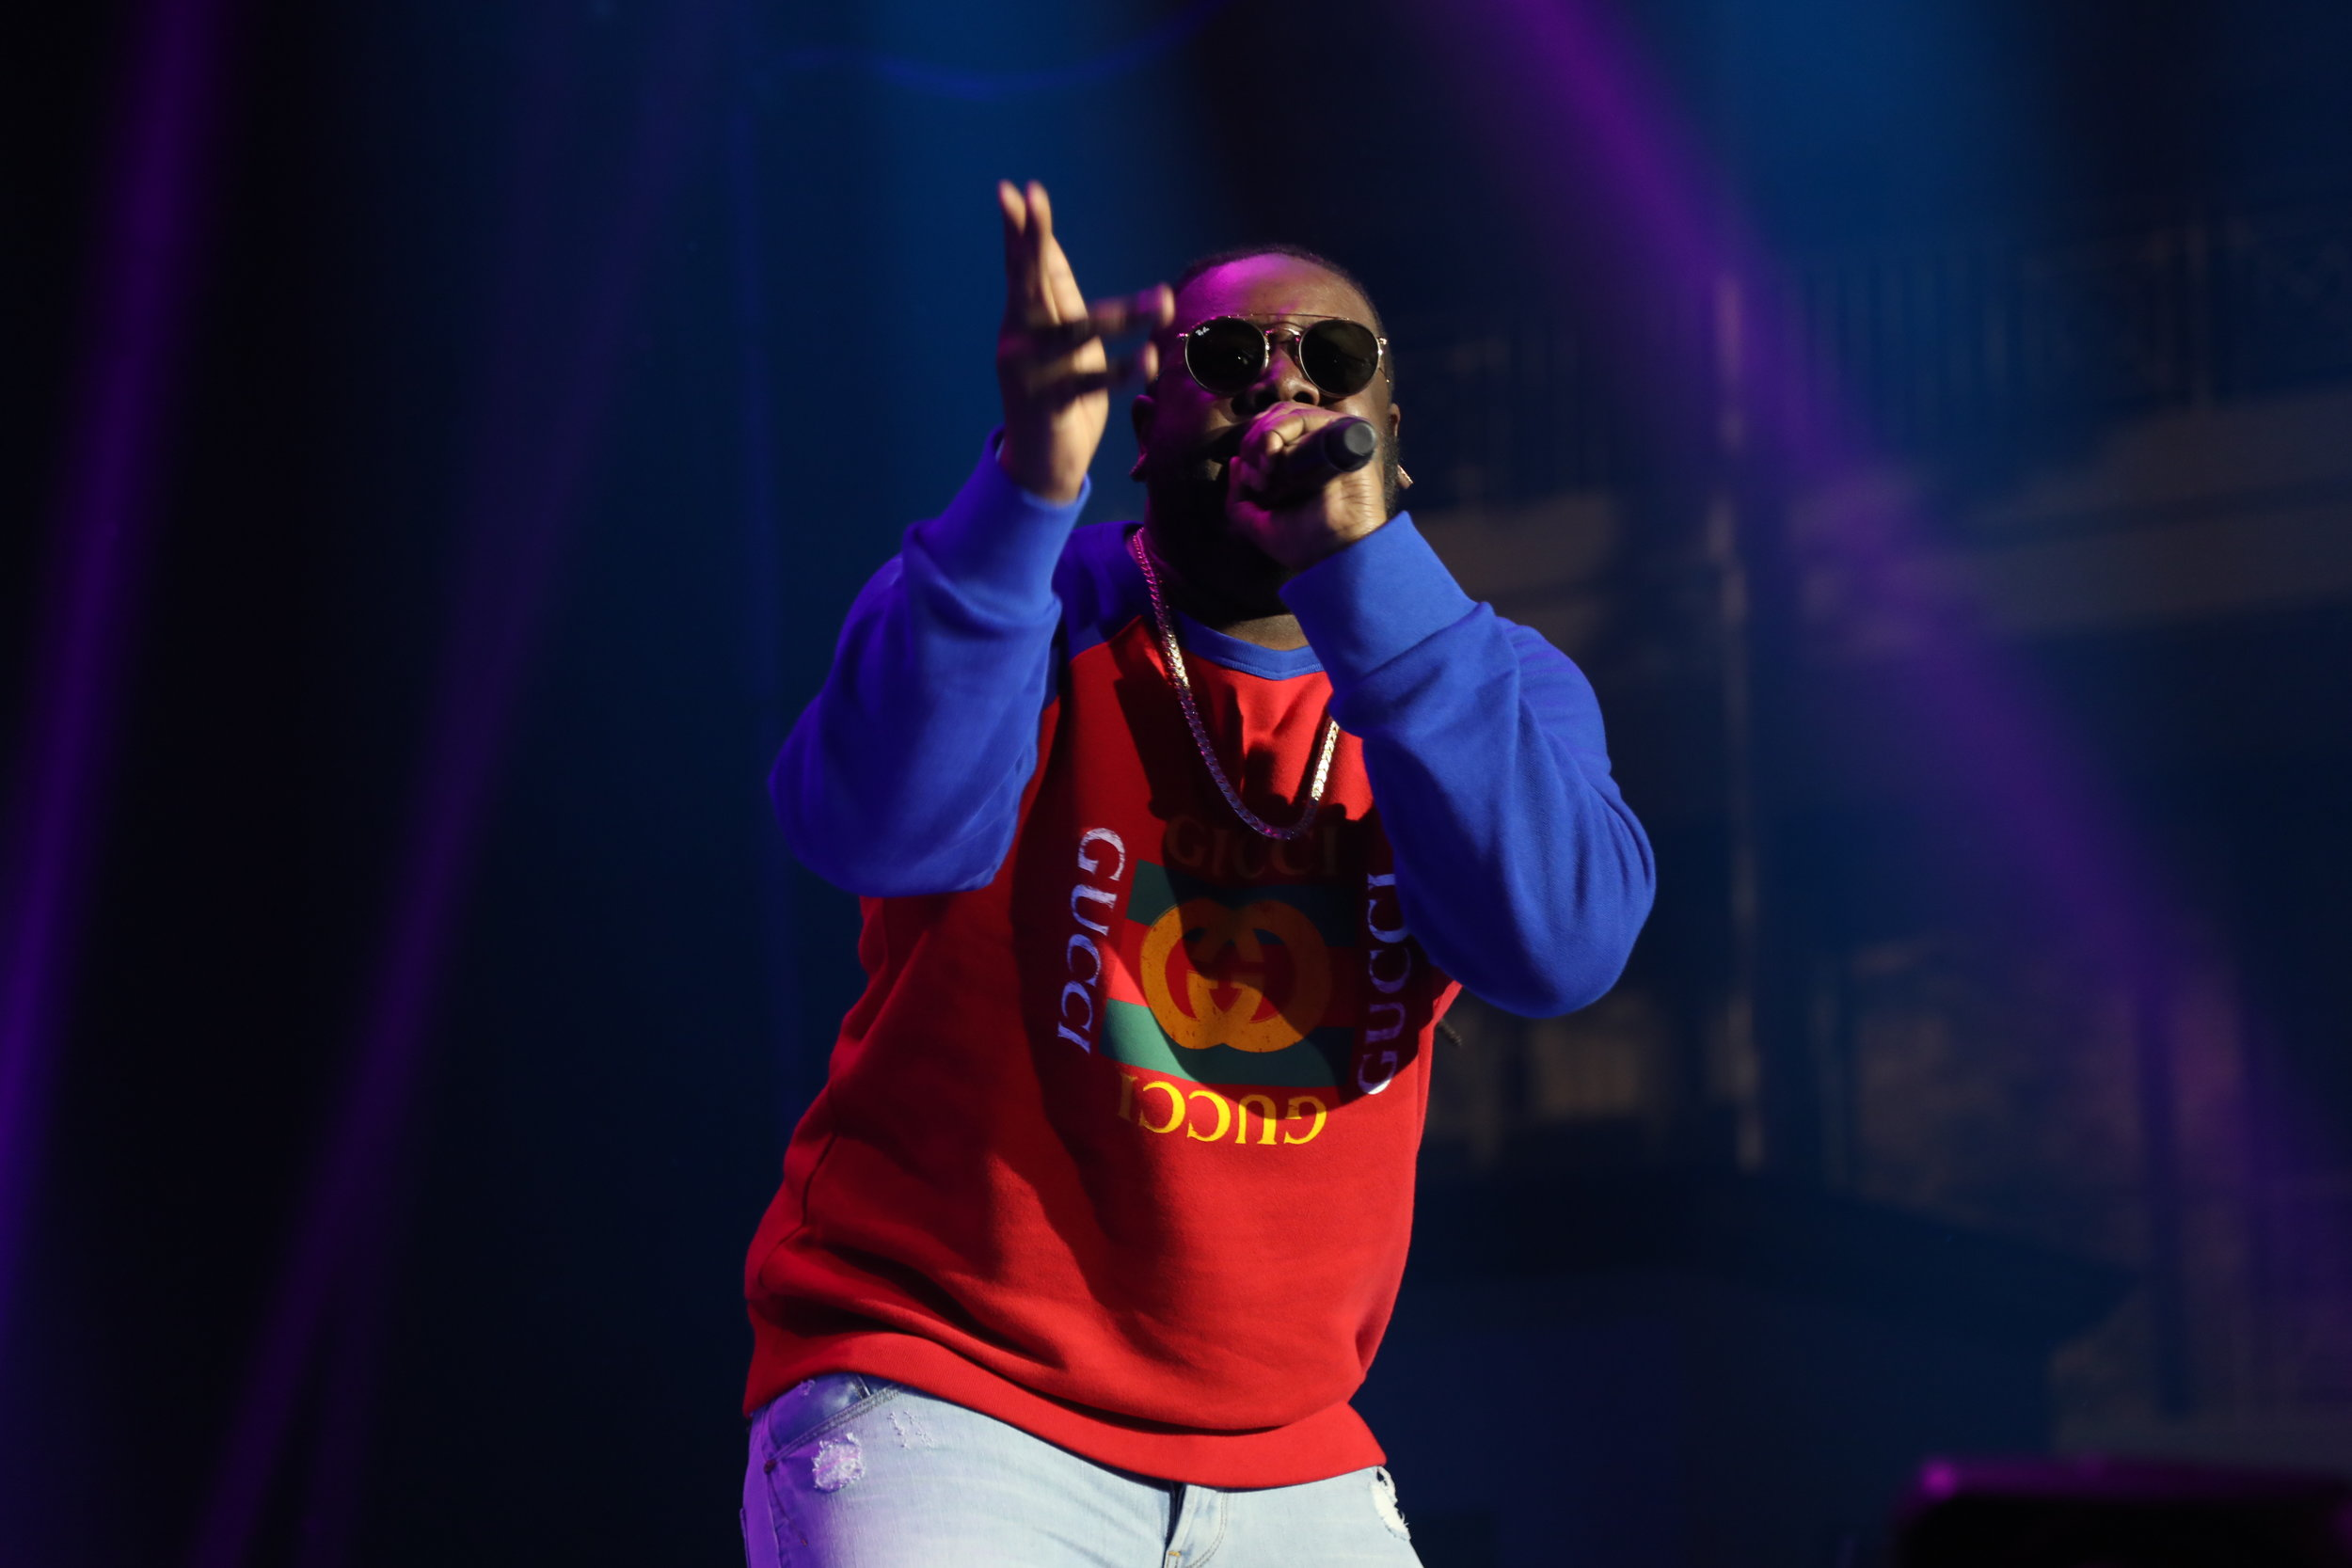 T-Pain performing at Rolling Stone LIVE: Minneapolis